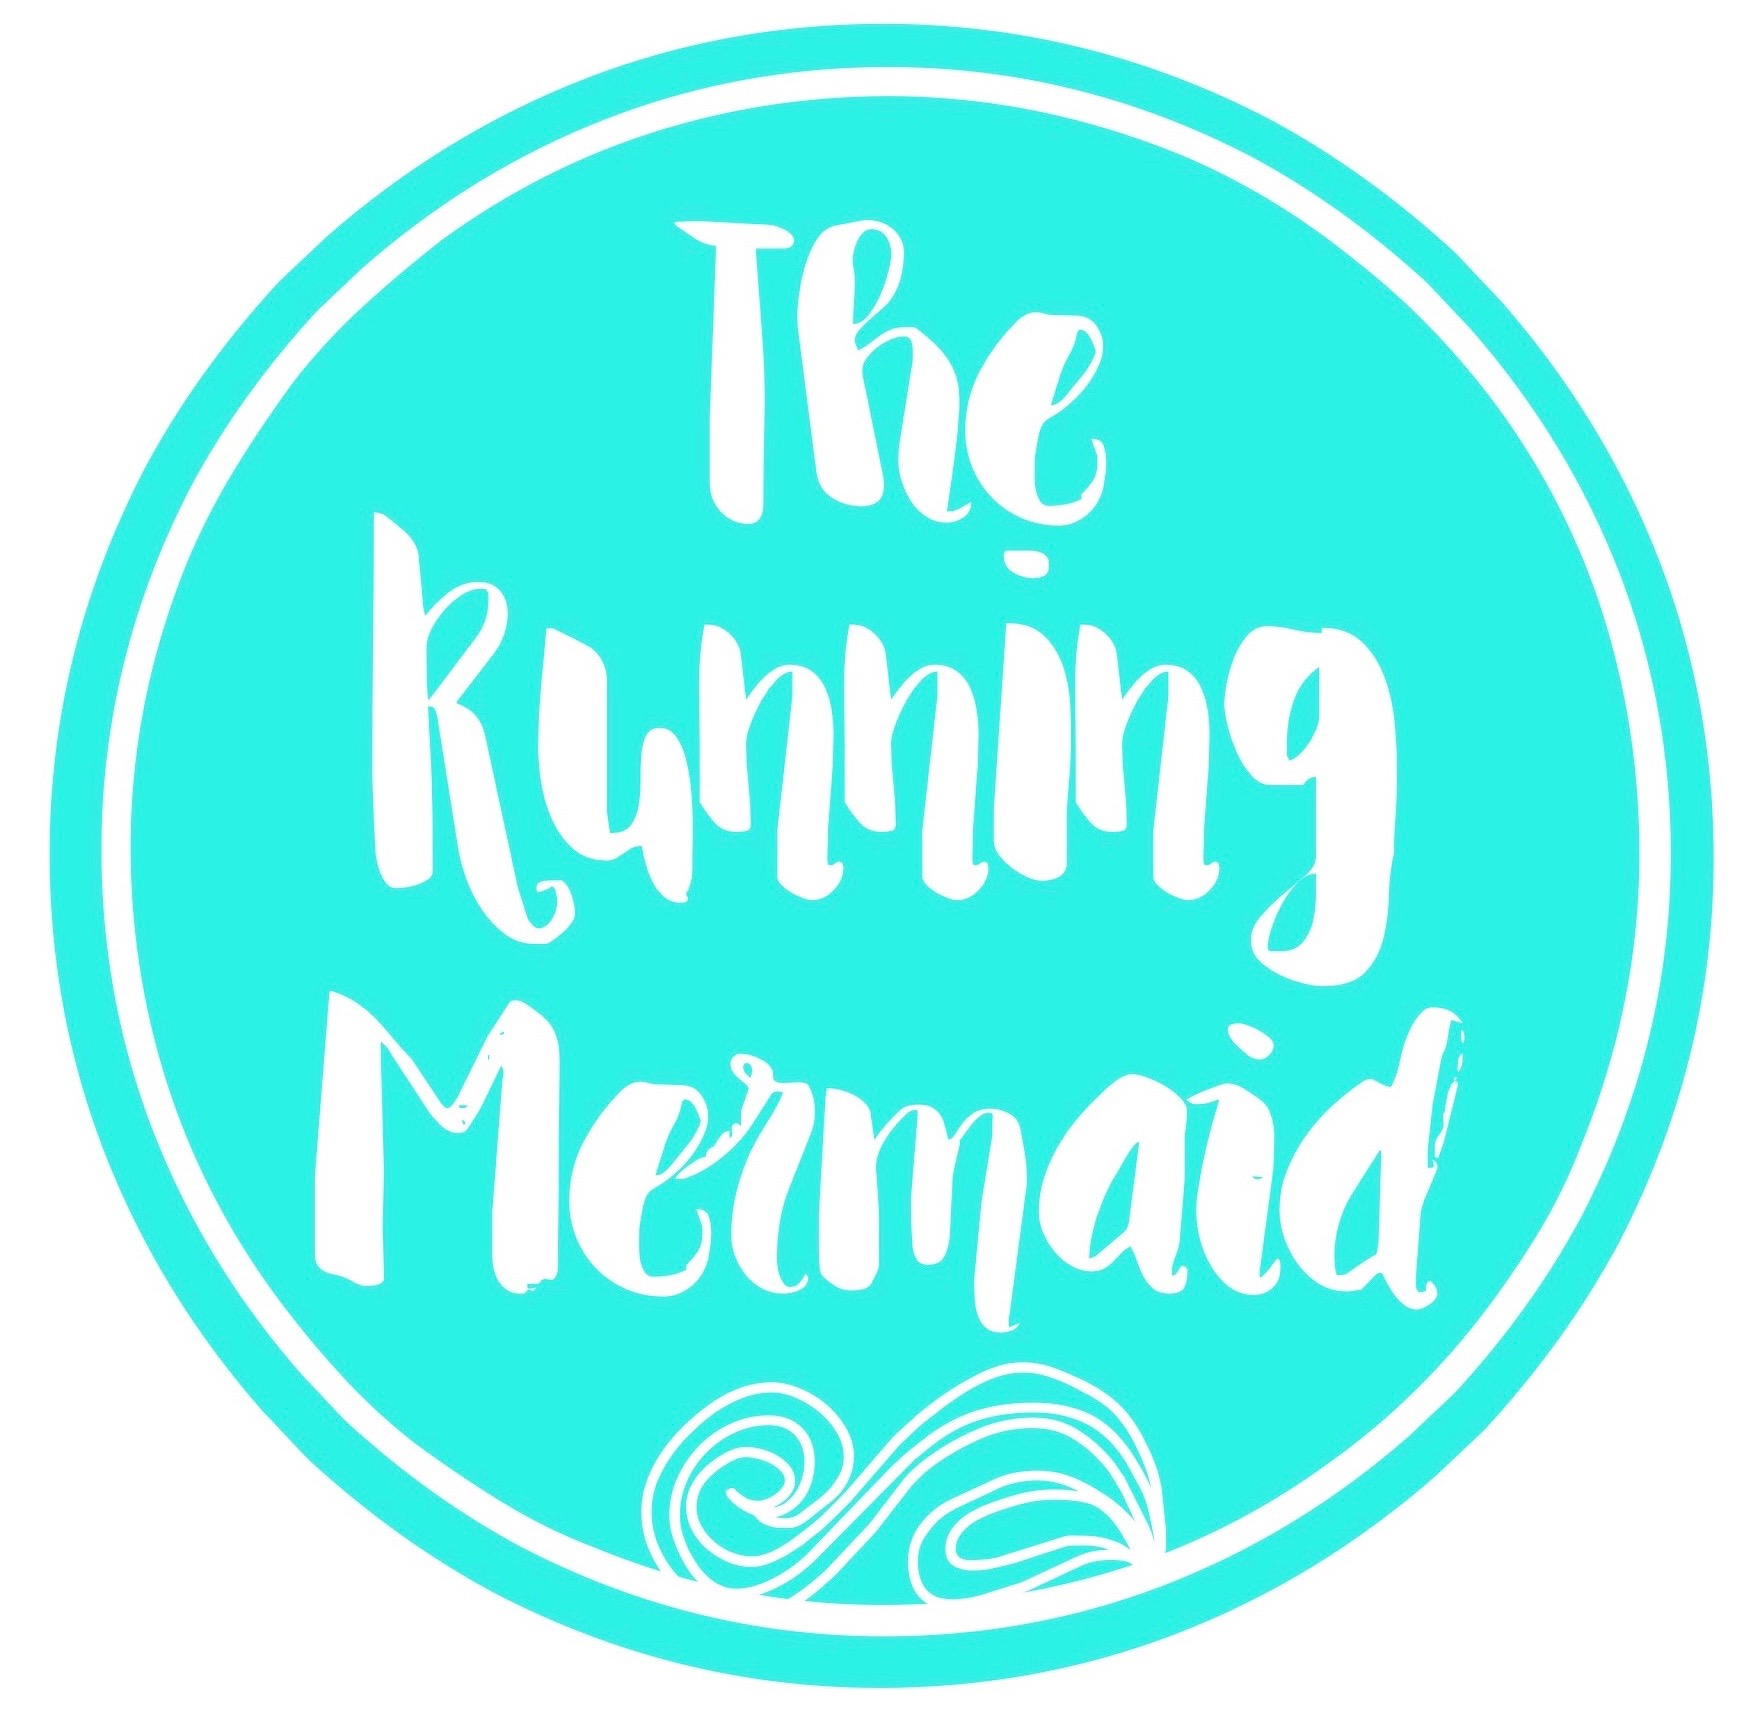 The Running Mermaid